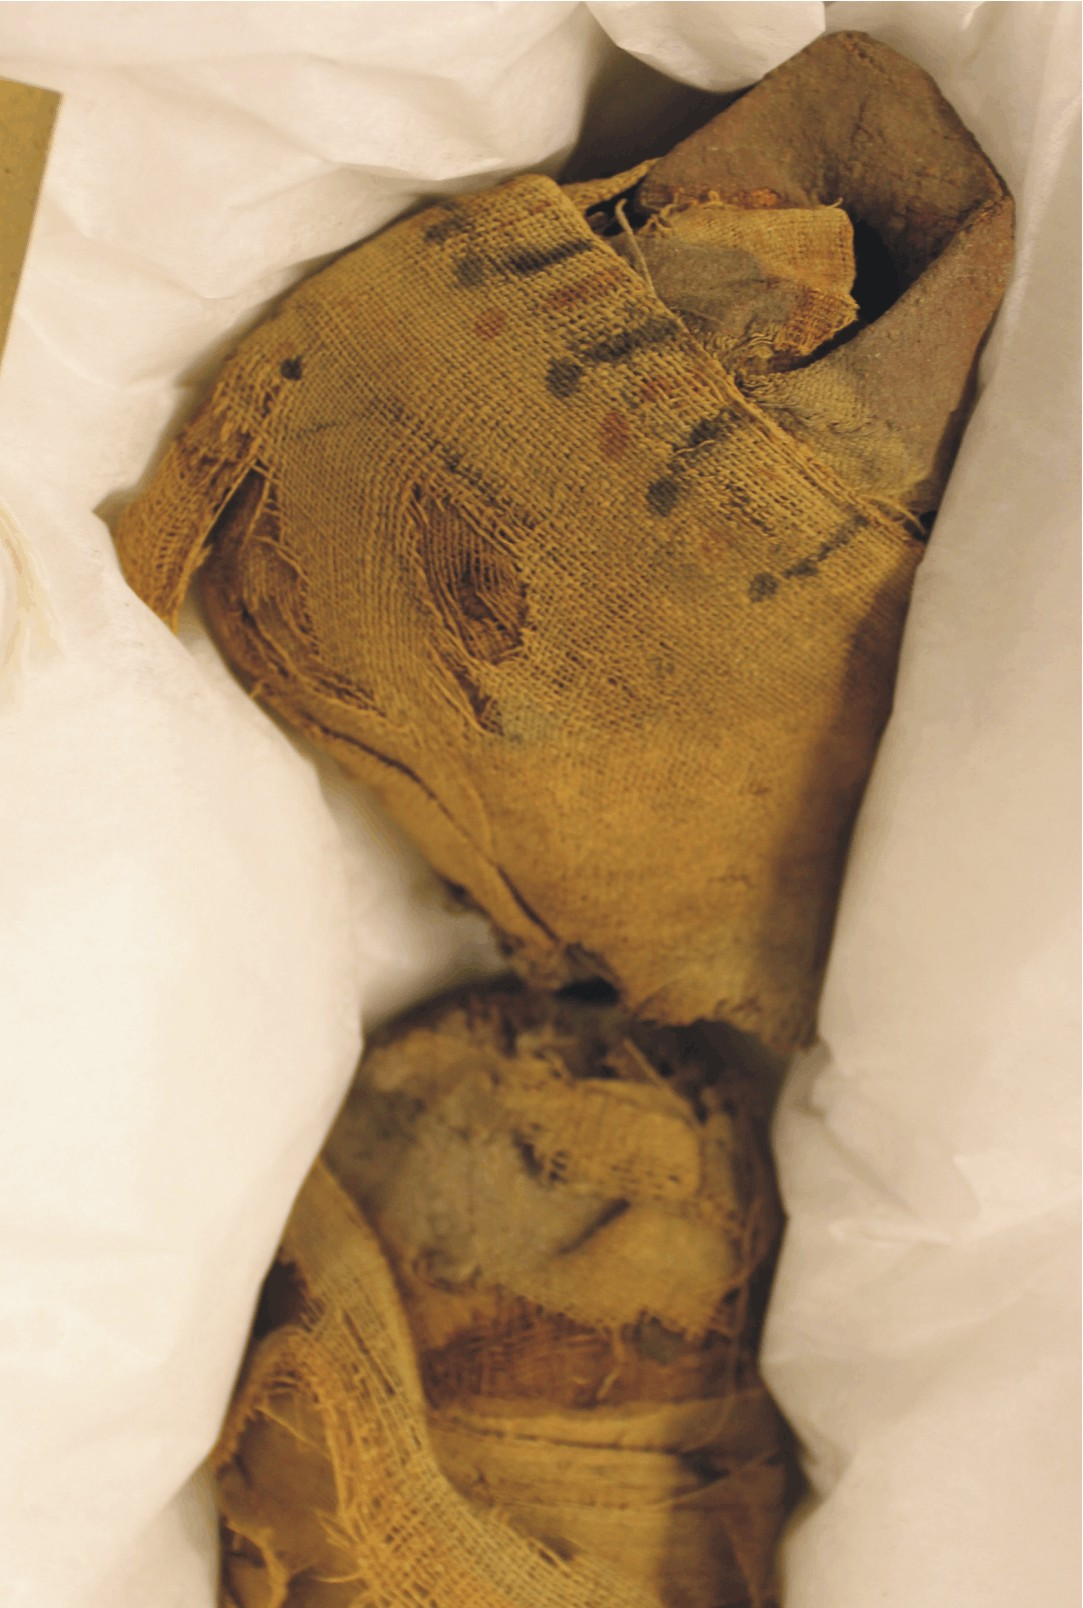 Image for: Mummified head of a cat